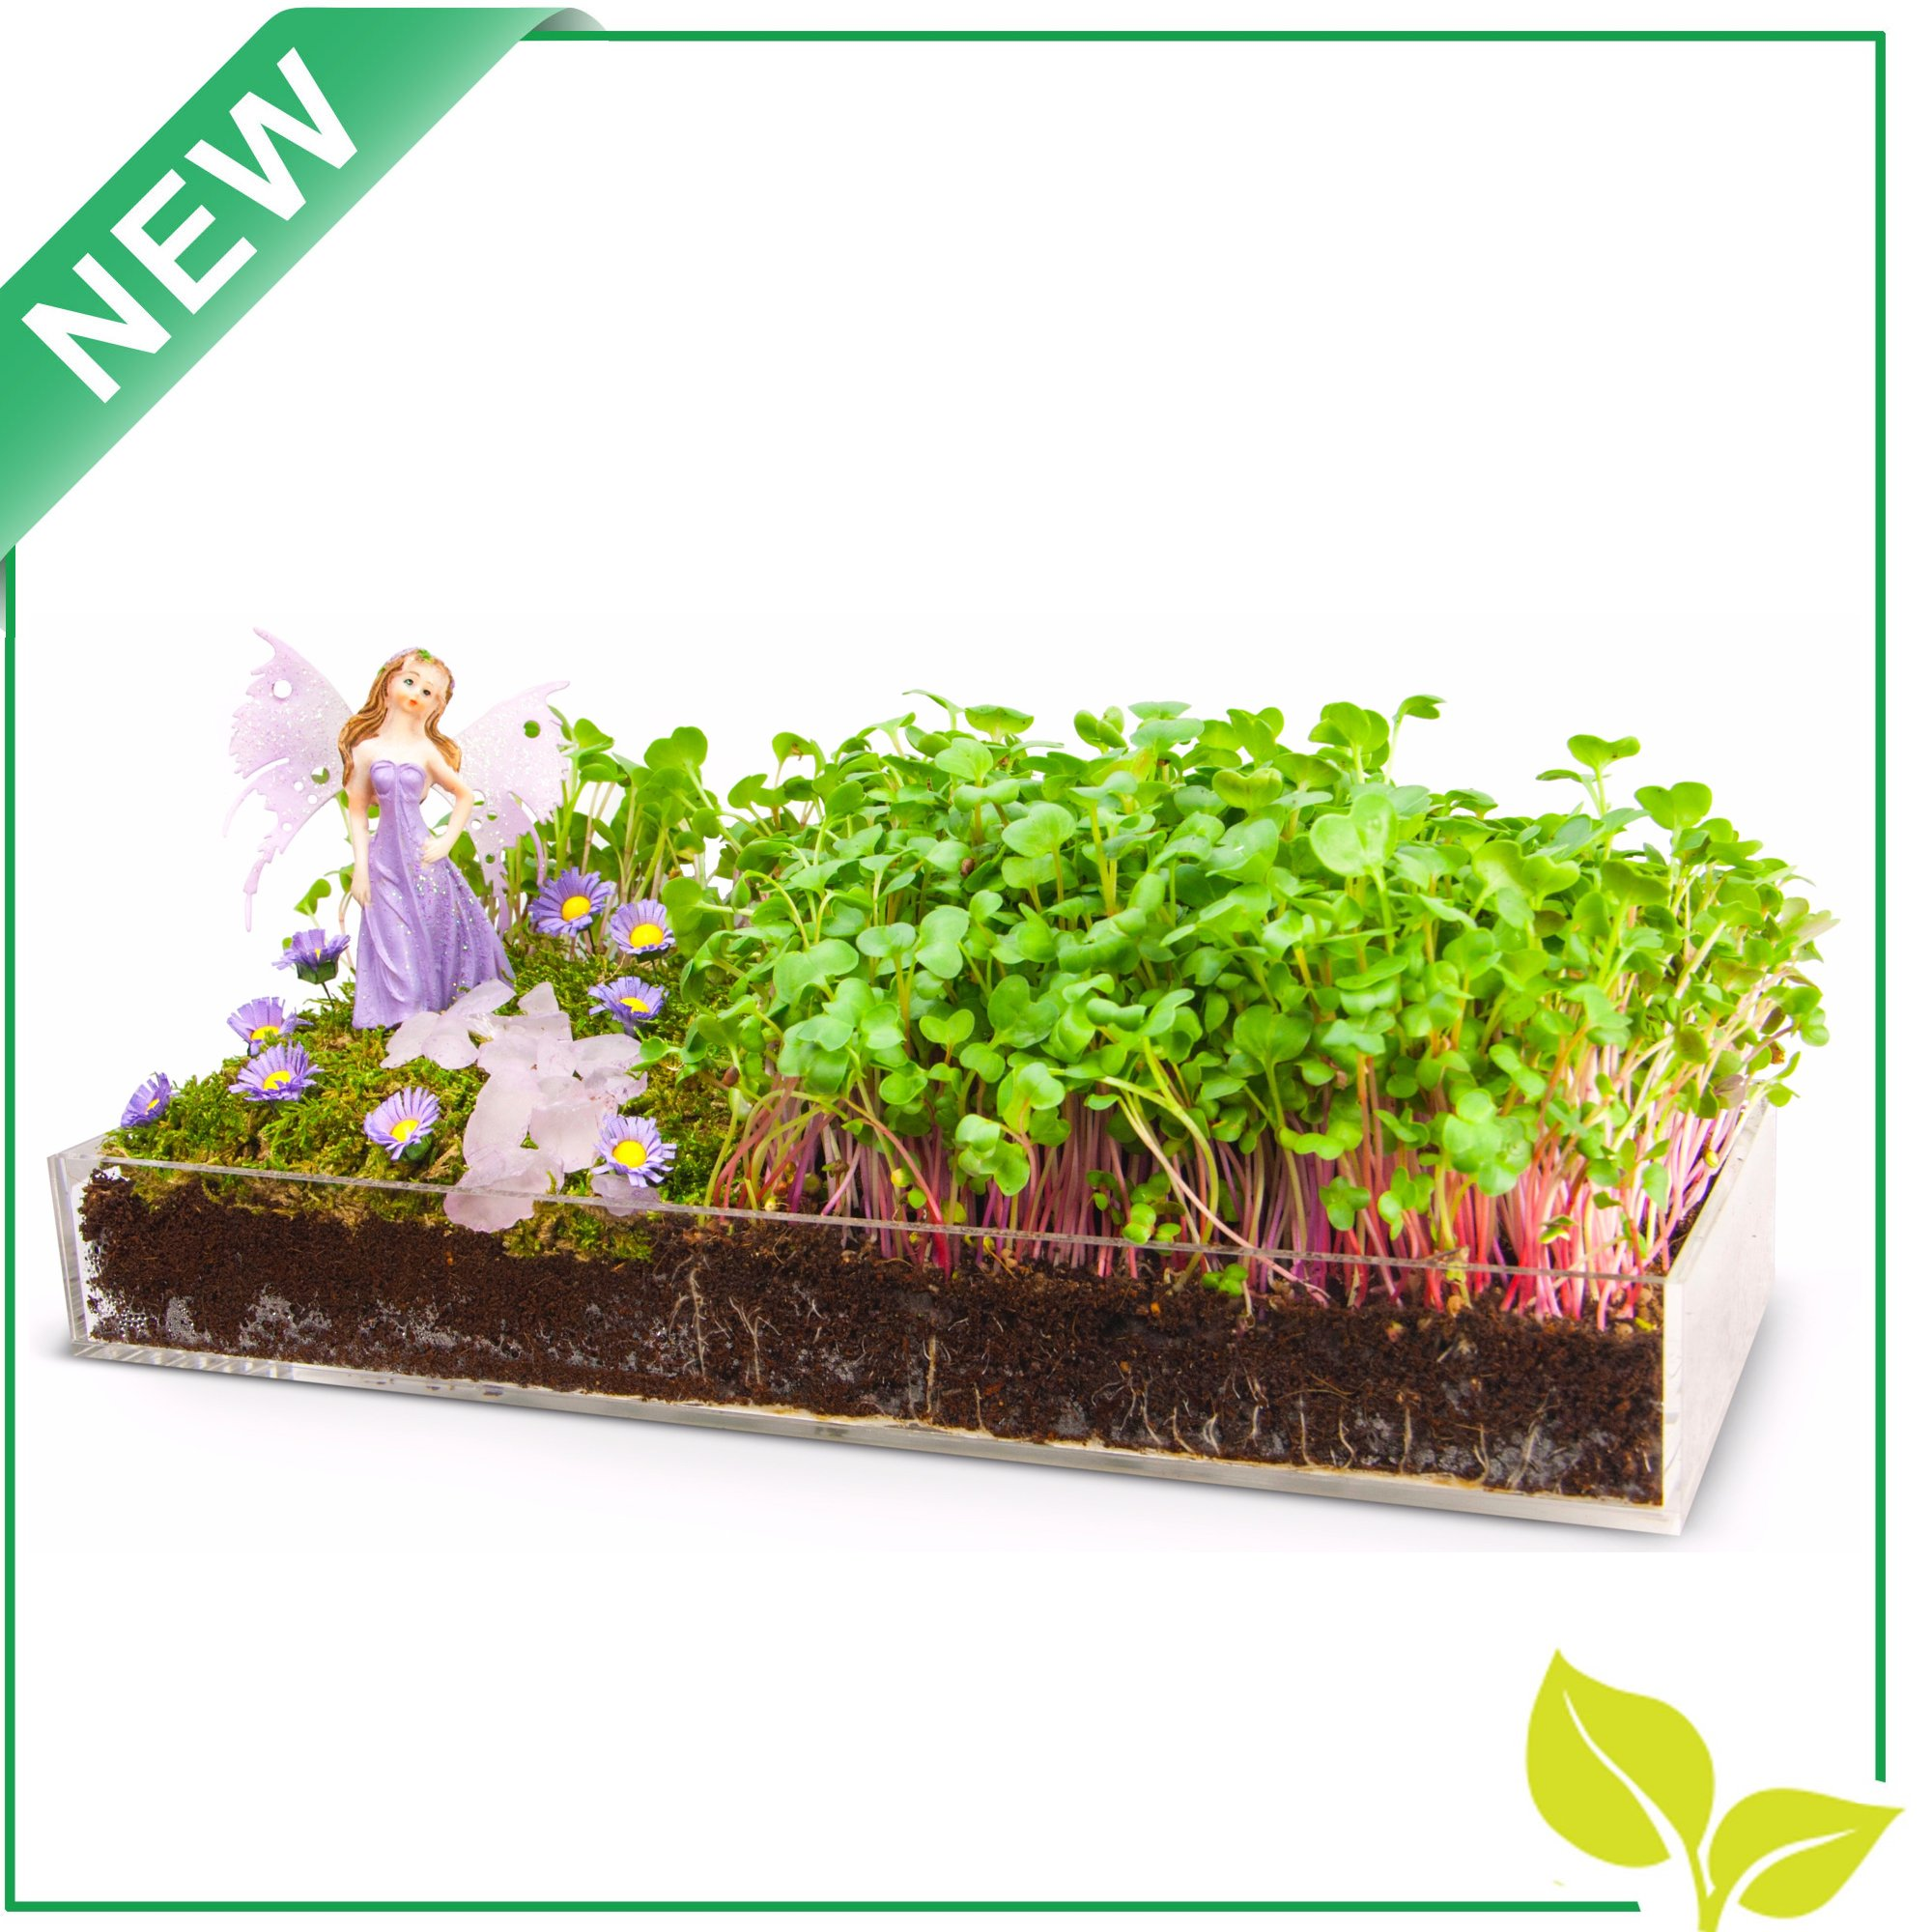 Window Garden Edible Fairy Garden Kit with an Enchanting Fairytale and Accessories by Window Garden (Image #2)